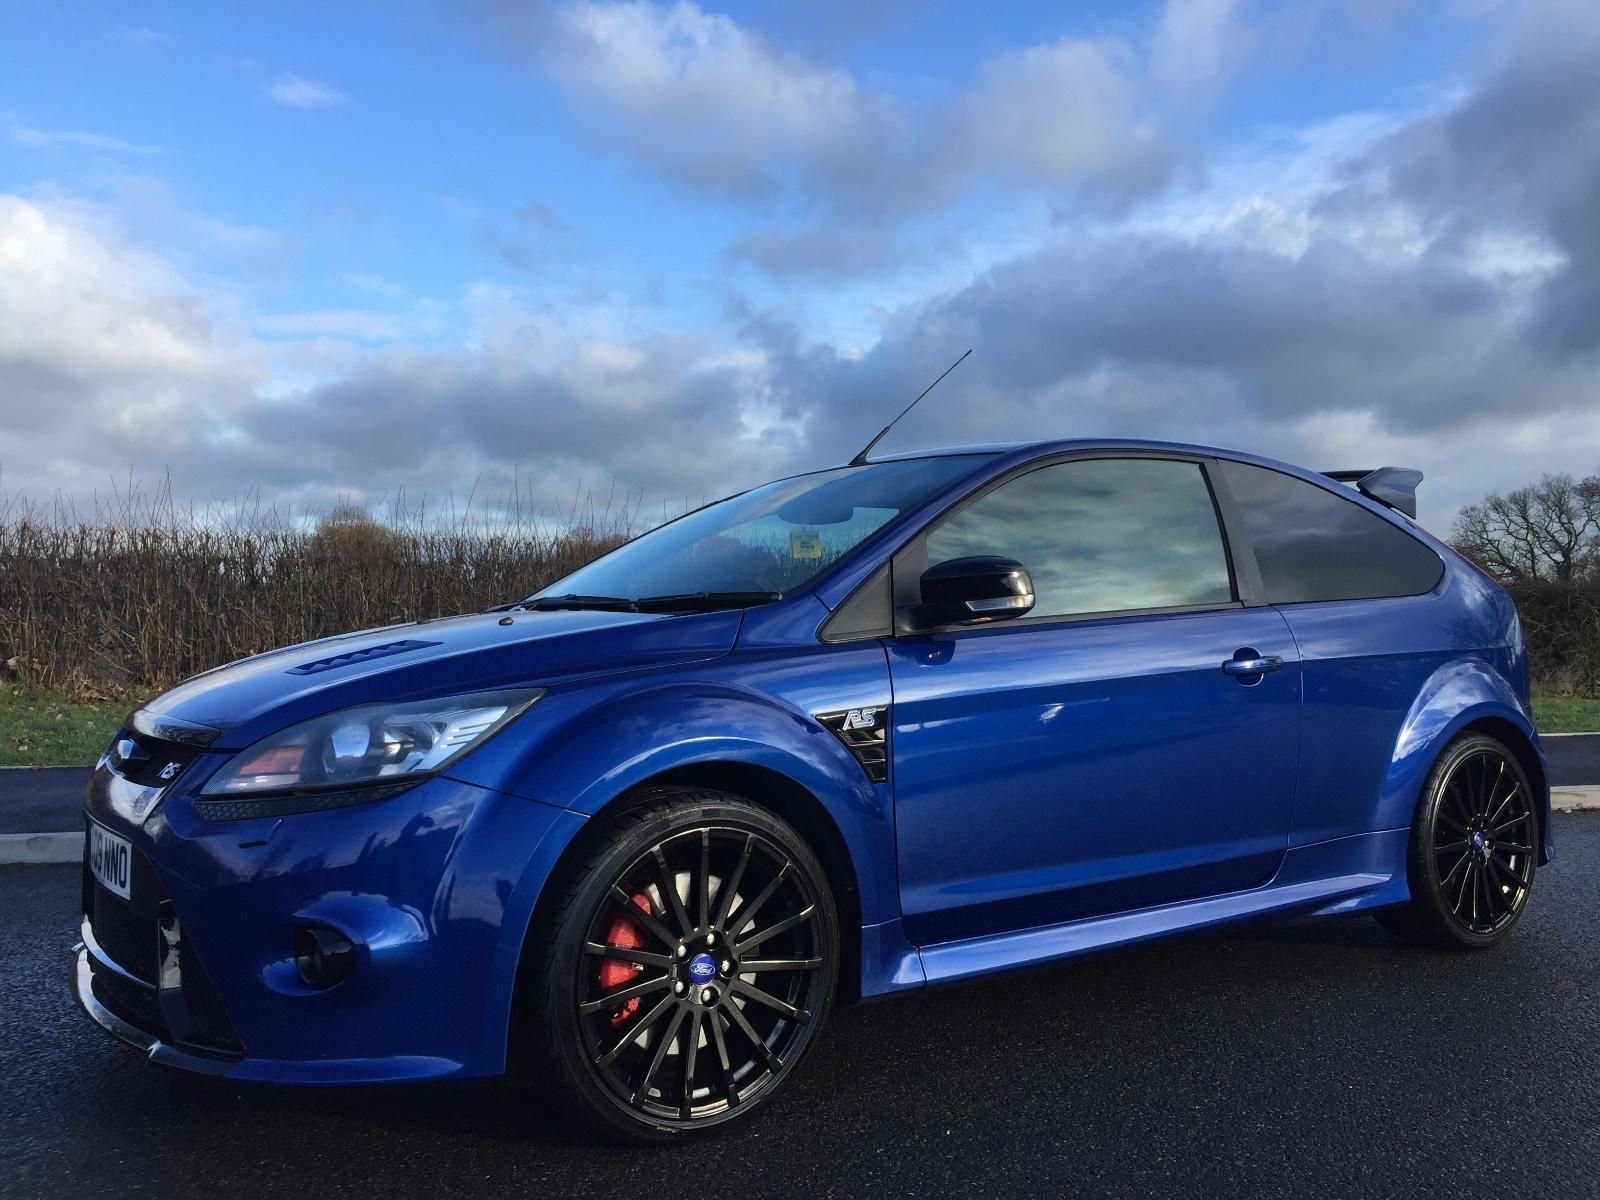 This Ford Focus Rs 2 5 20v Fsh Lux Pack 1 Is For Sale